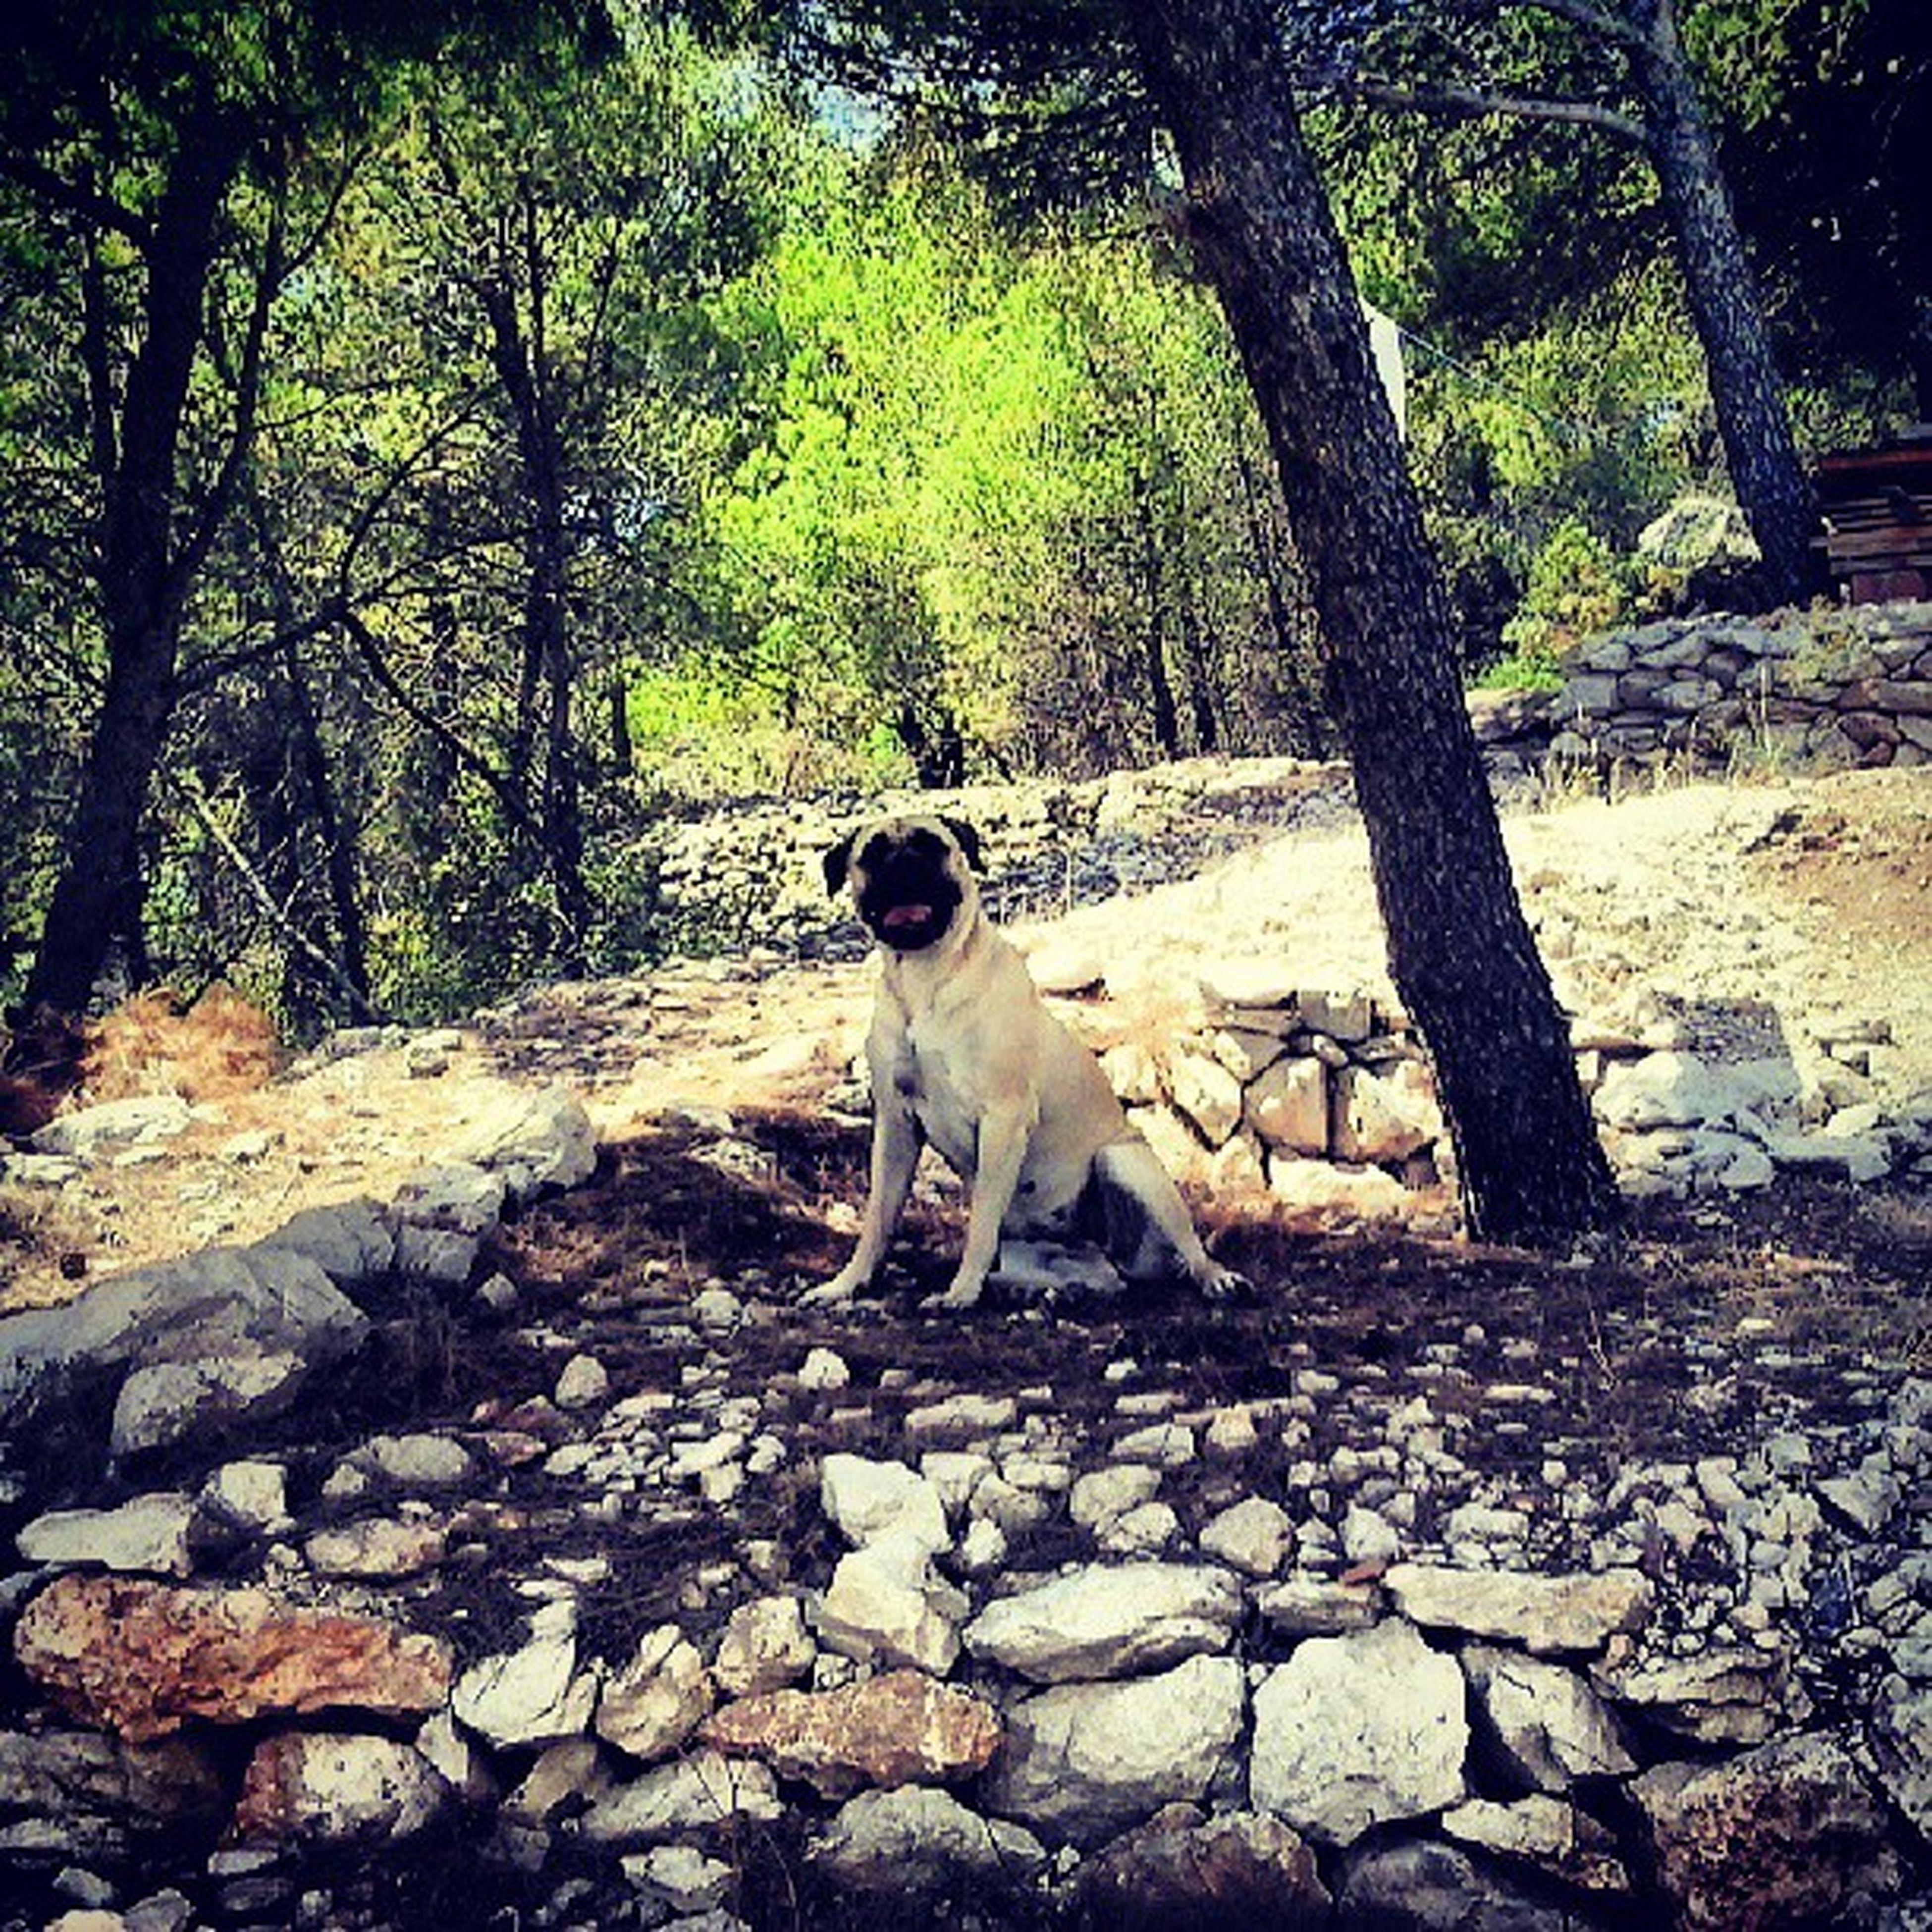 tree, animal themes, mammal, full length, one animal, forest, dog, standing, rock - object, nature, domestic animals, tree trunk, walking, day, sitting, outdoors, pets, growth